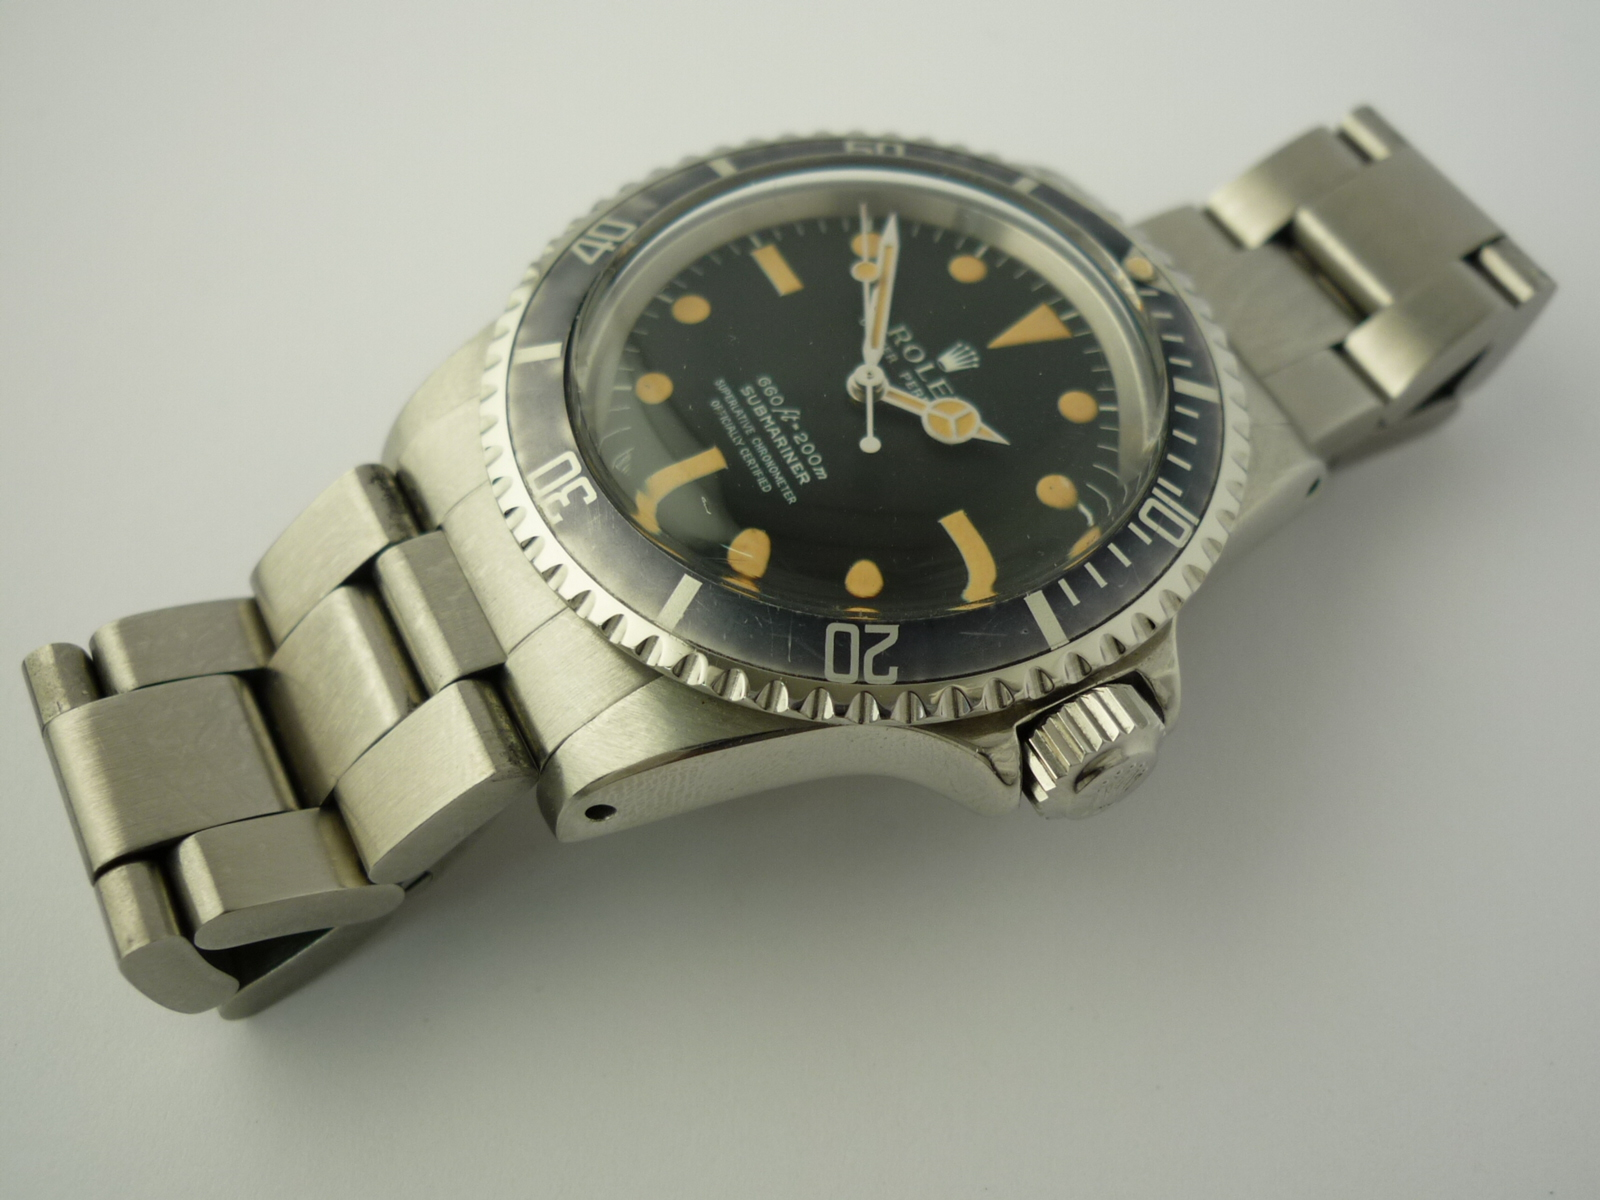 Rolex Oyster Perpetual Submariner ref 5512  (1978)